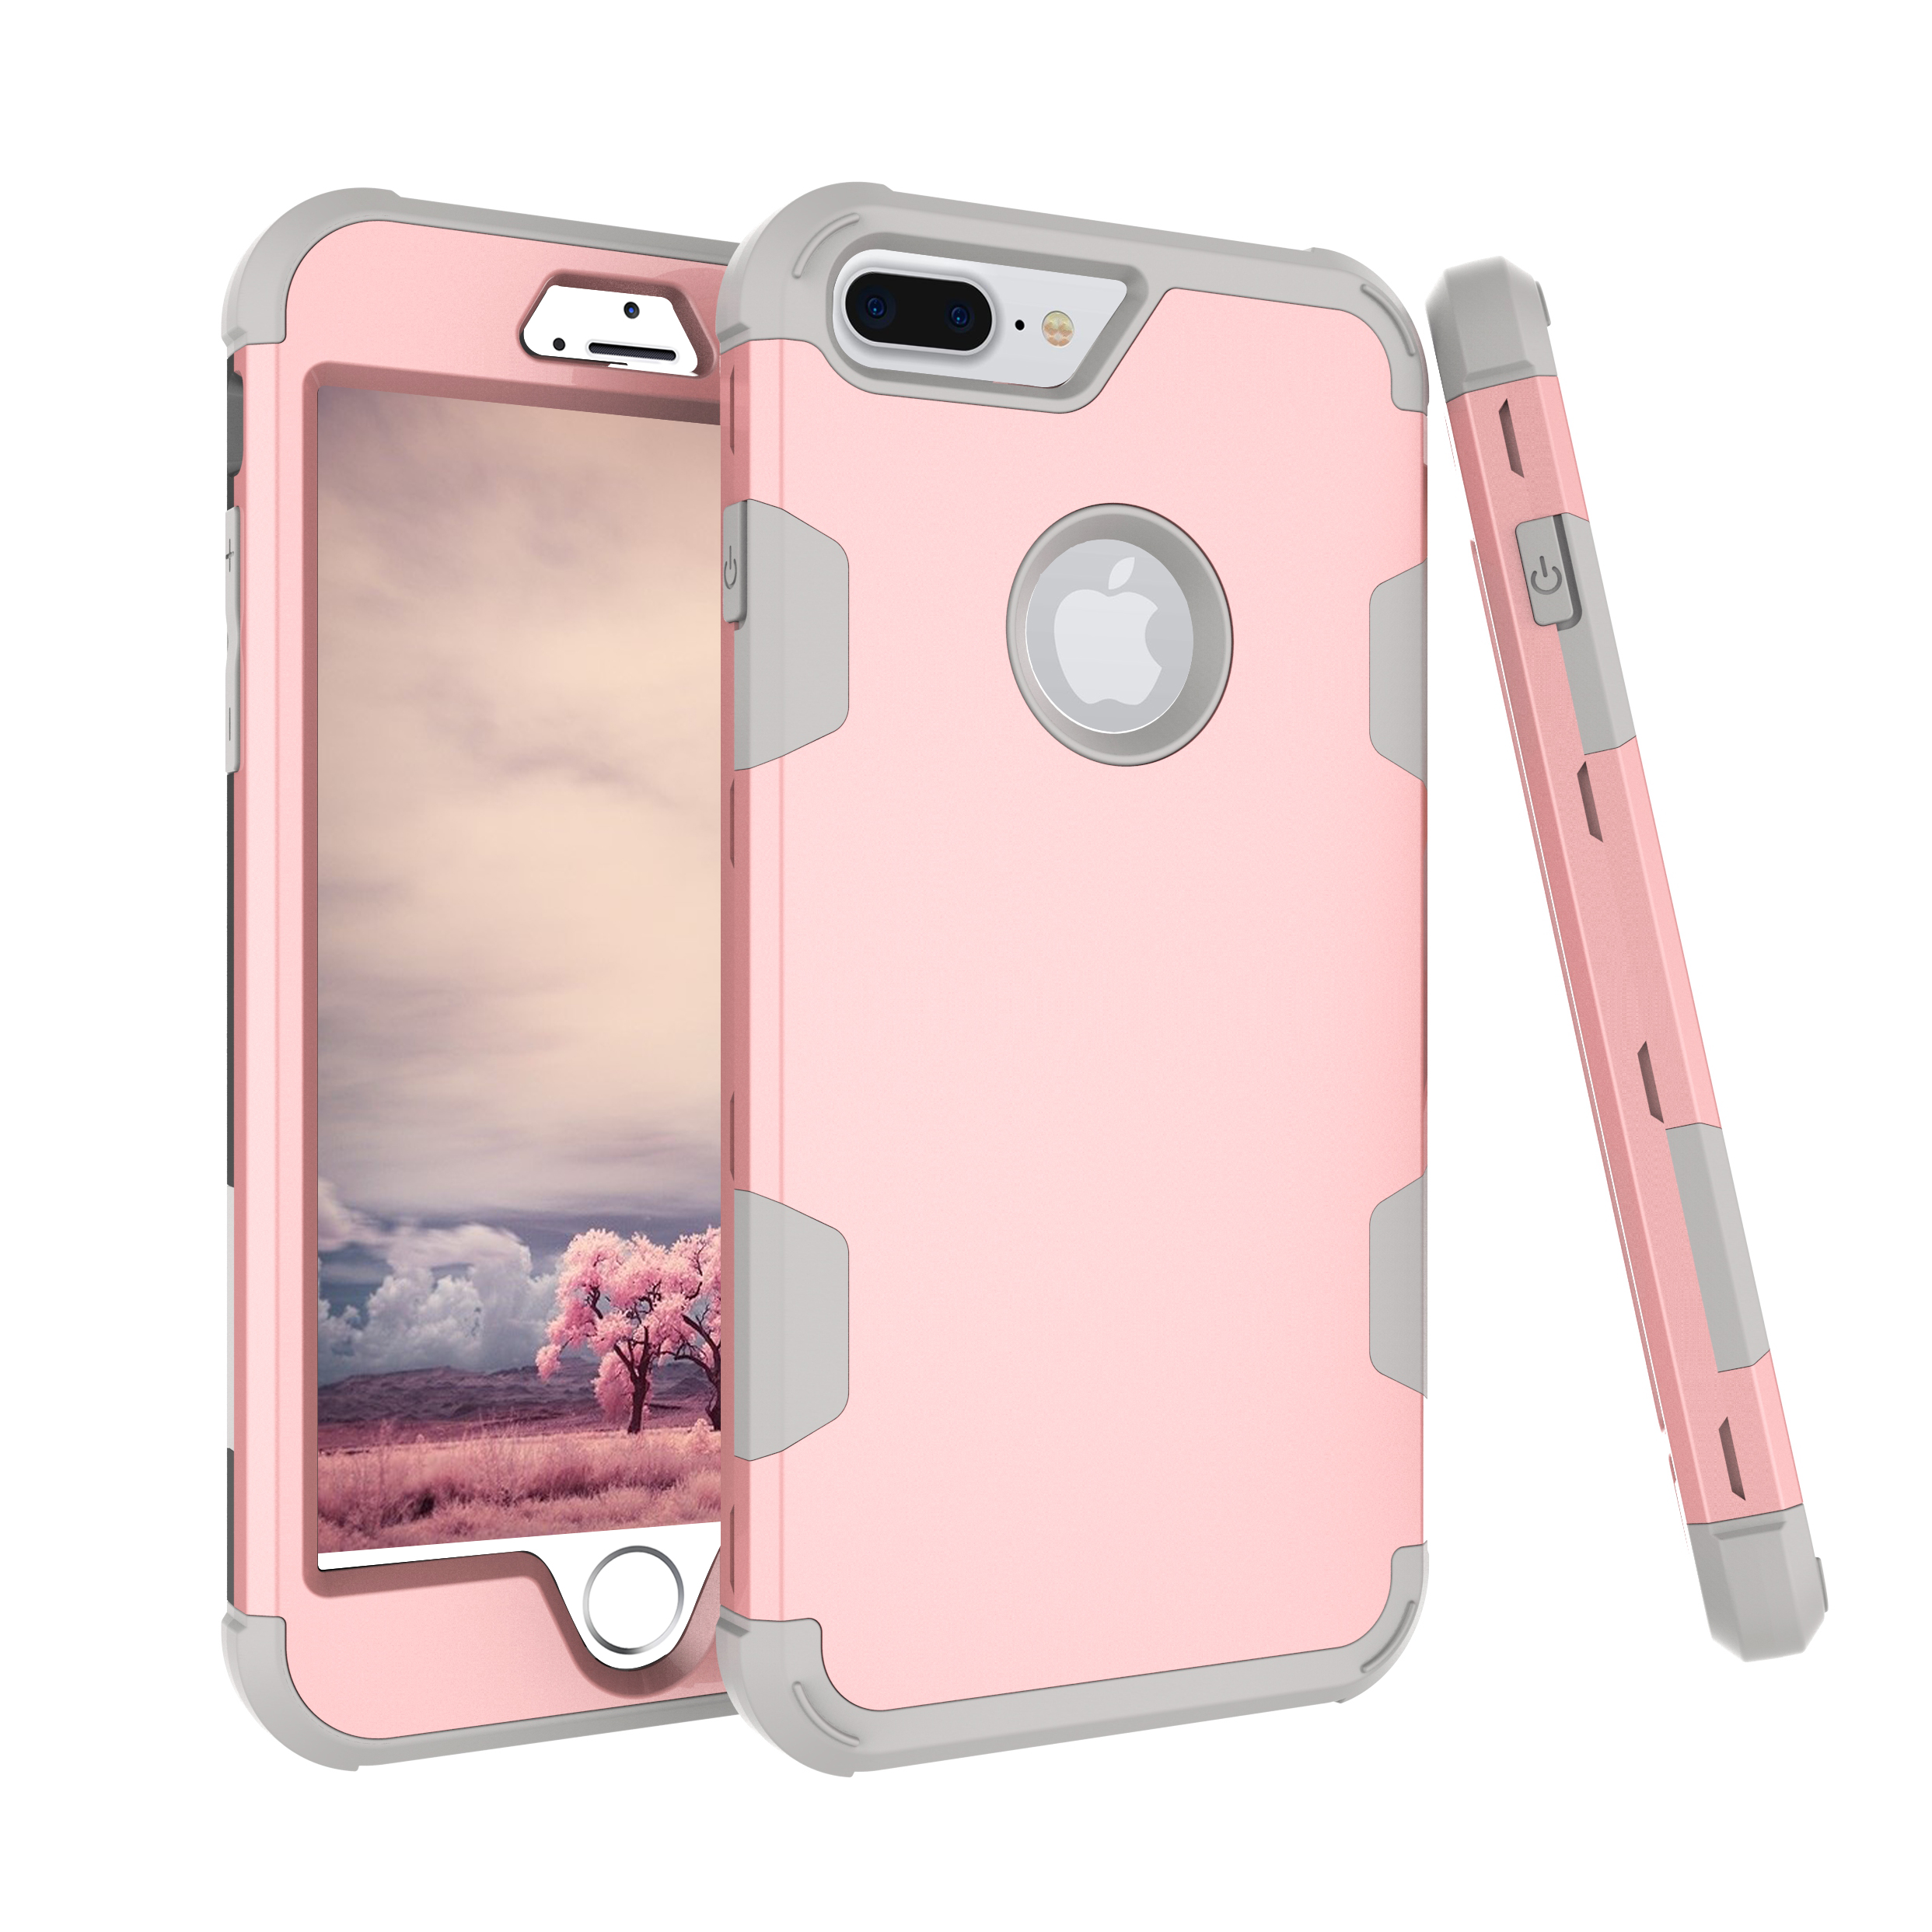 For iPhone 7 plus PC+ Silicone 2 in 1 Hit Color Tri-proof Shockproof Dustproof Anti-fall Protective Cover Back Case Rose gold + gray